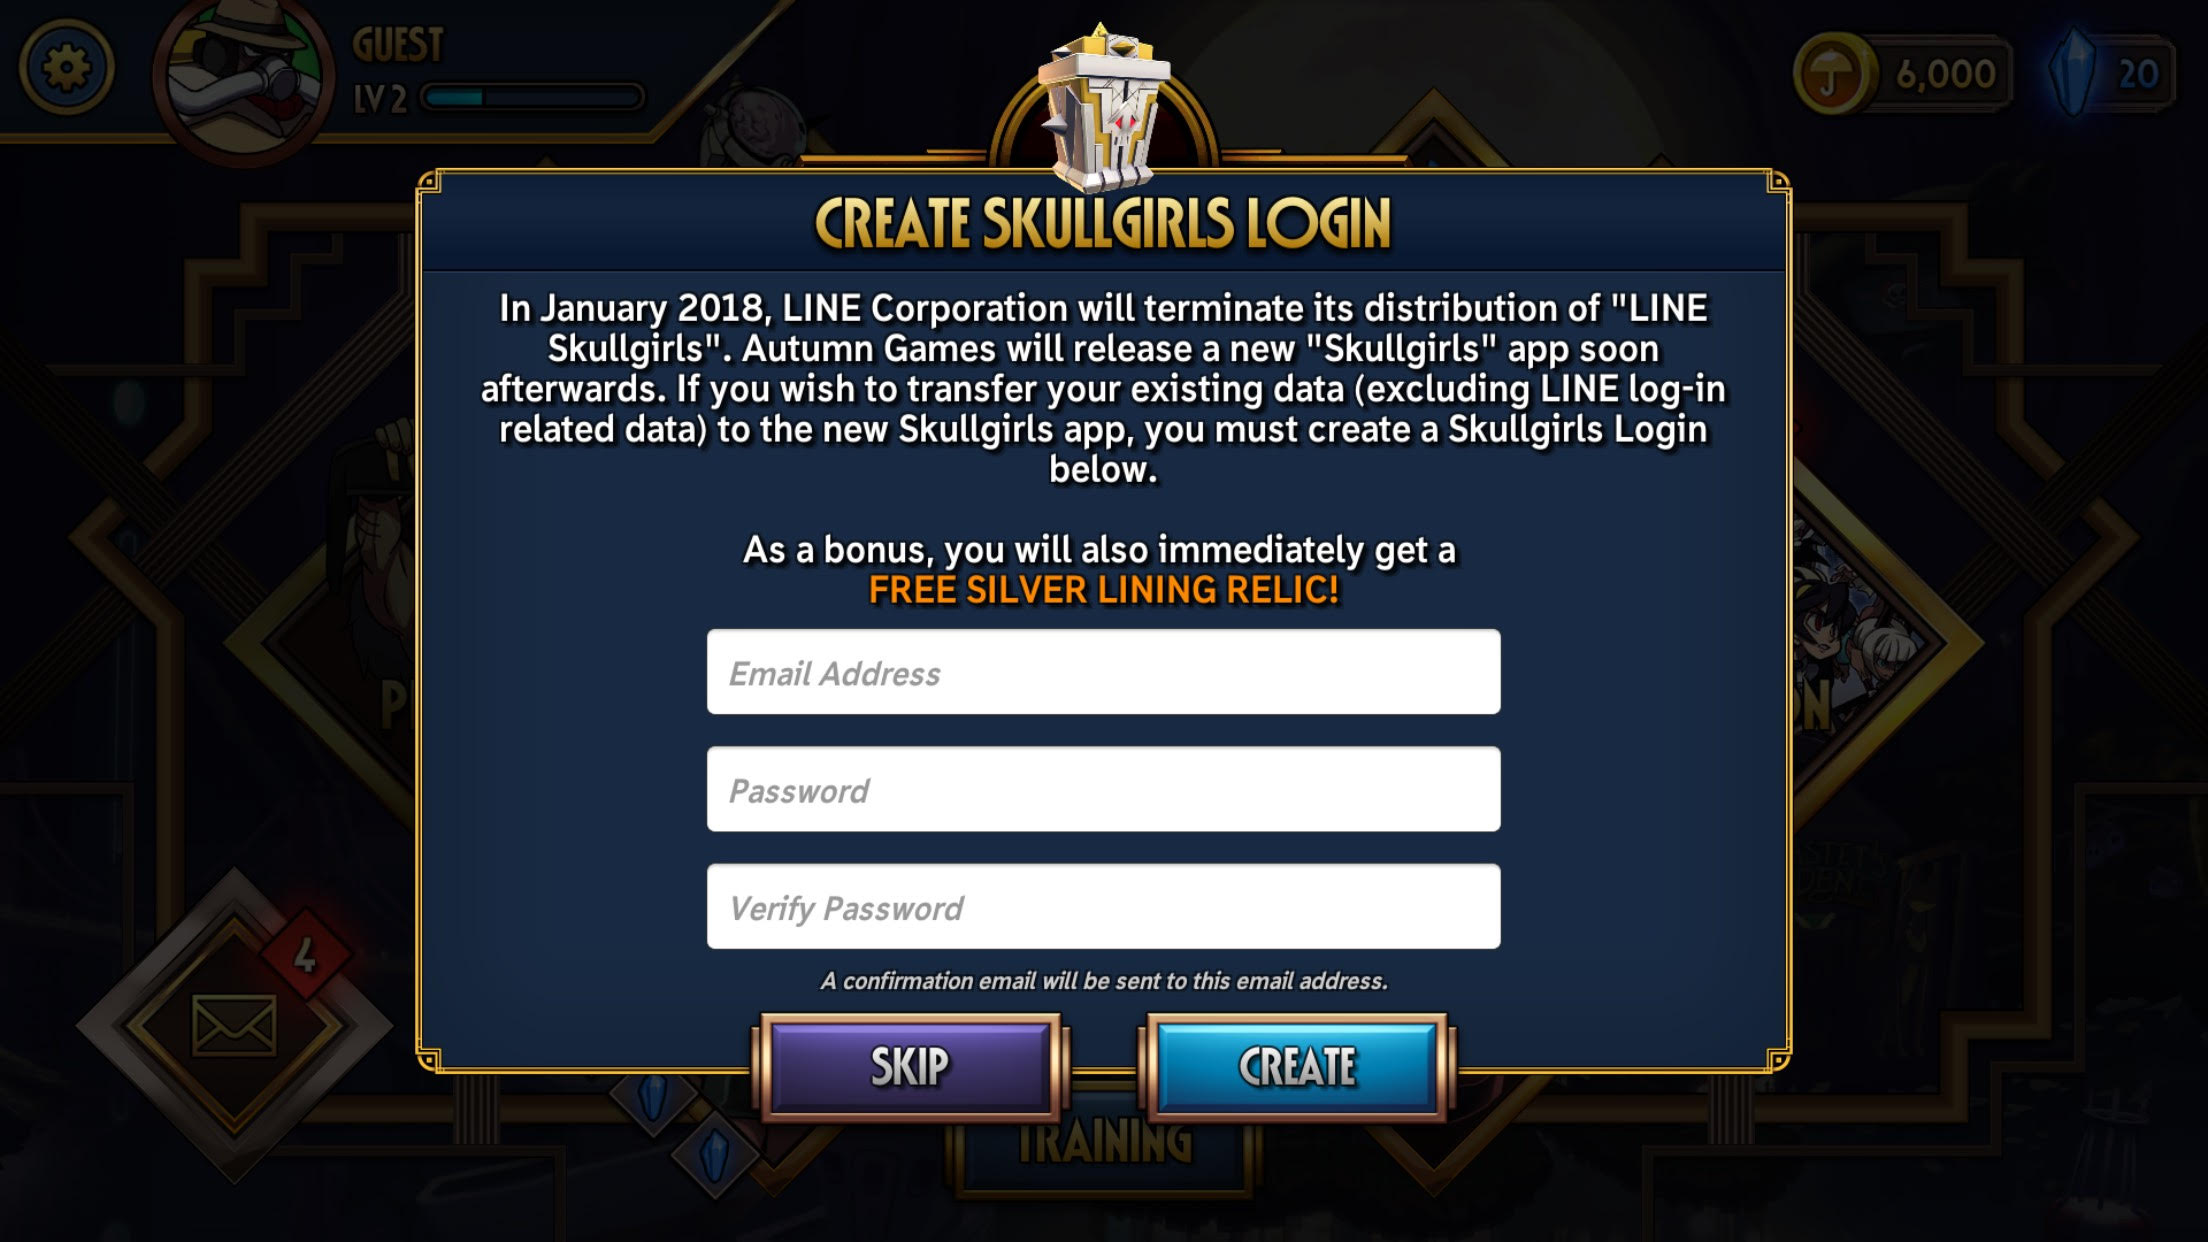 Skullgirls Mobile Data Loss Migration Warning « Skullgirls 2nd Encore